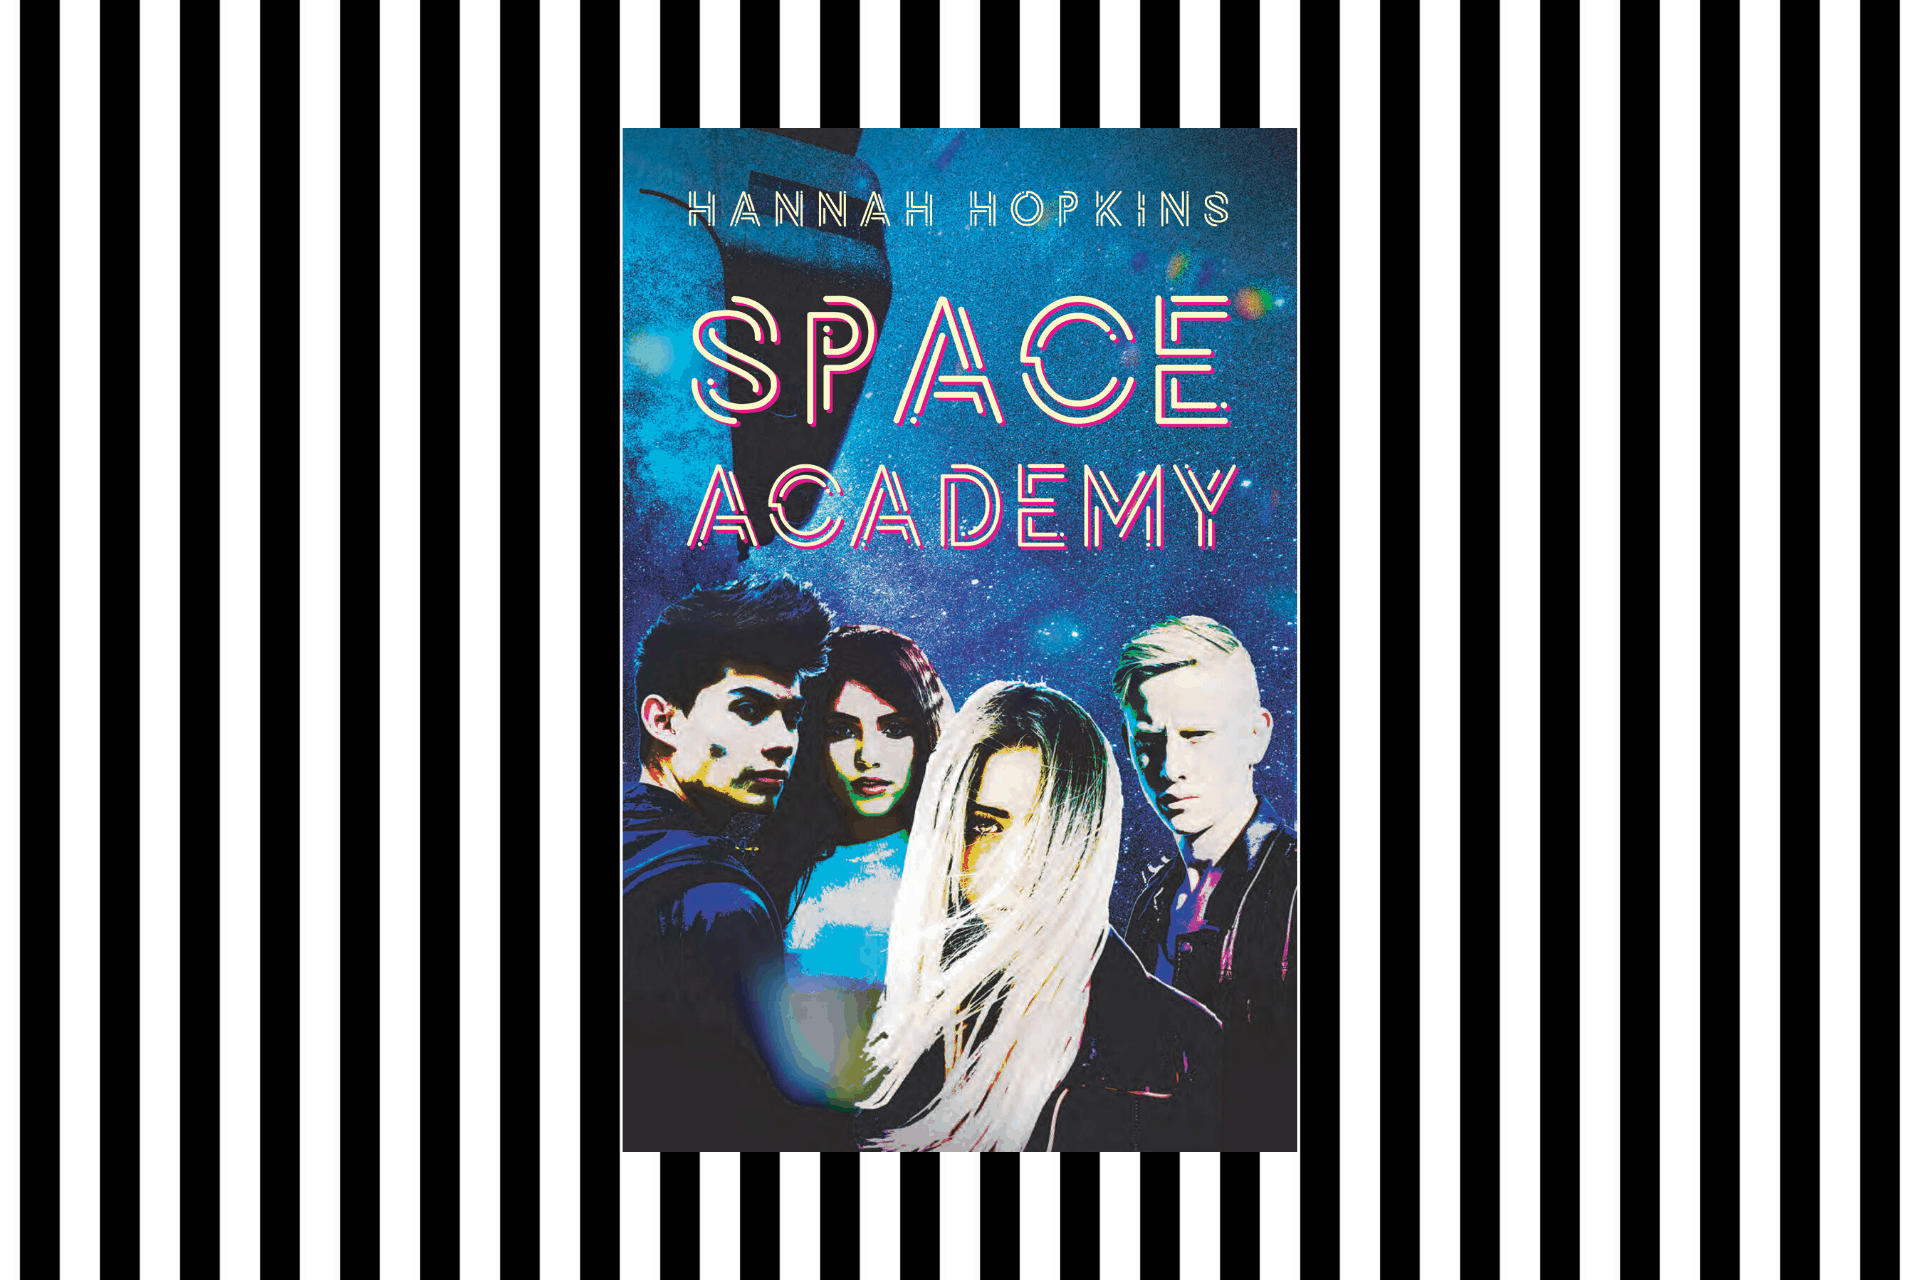 The cover of Space Academy by Hannah Hopkins